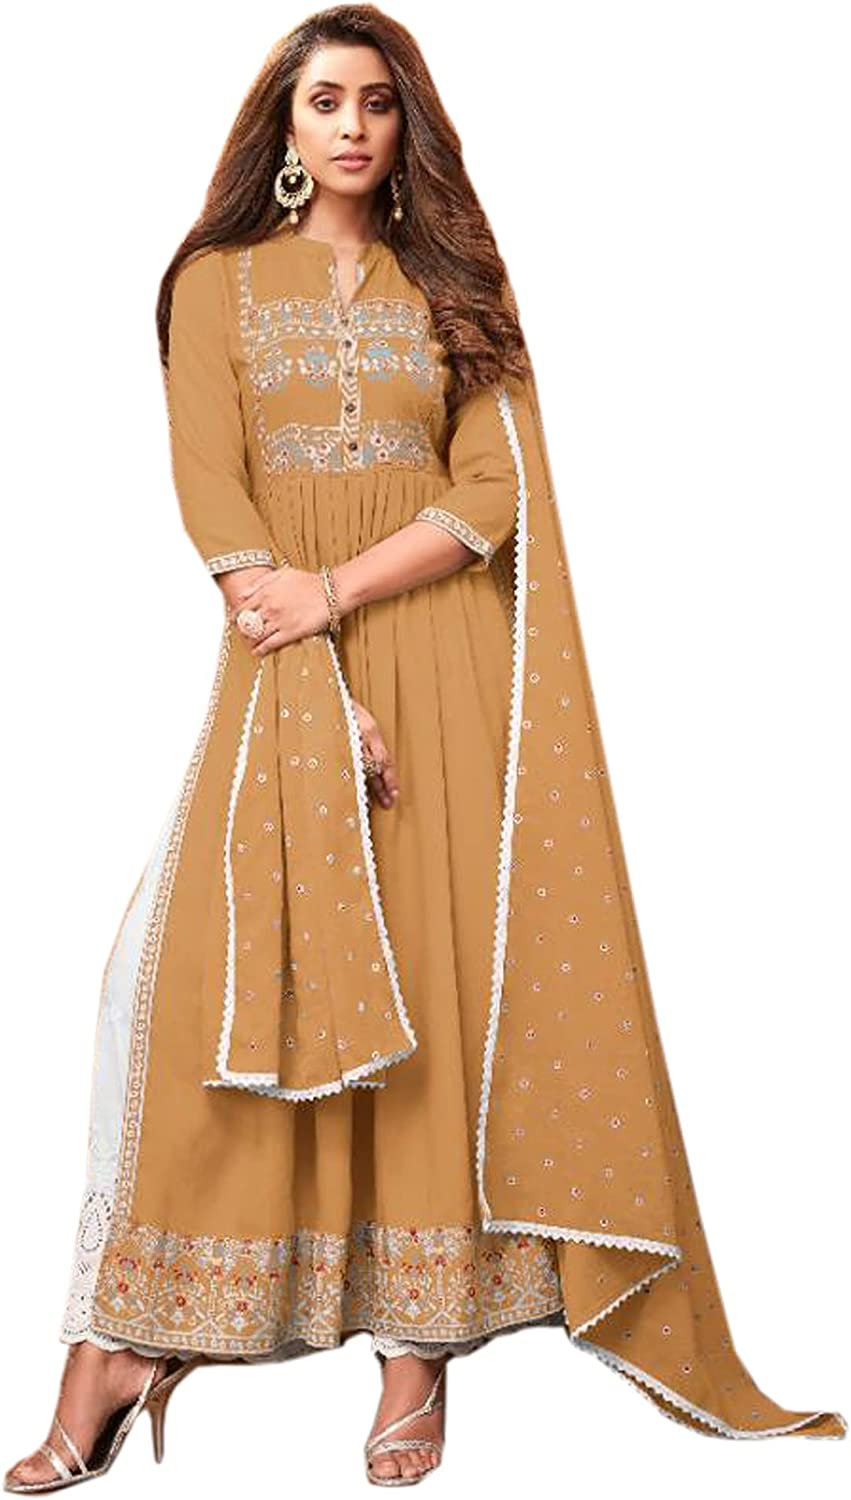 Mustard Heavy Reyon Printed Indian Party Wear Max Genuine Free Shipping 83% OFF Straigh Women Long